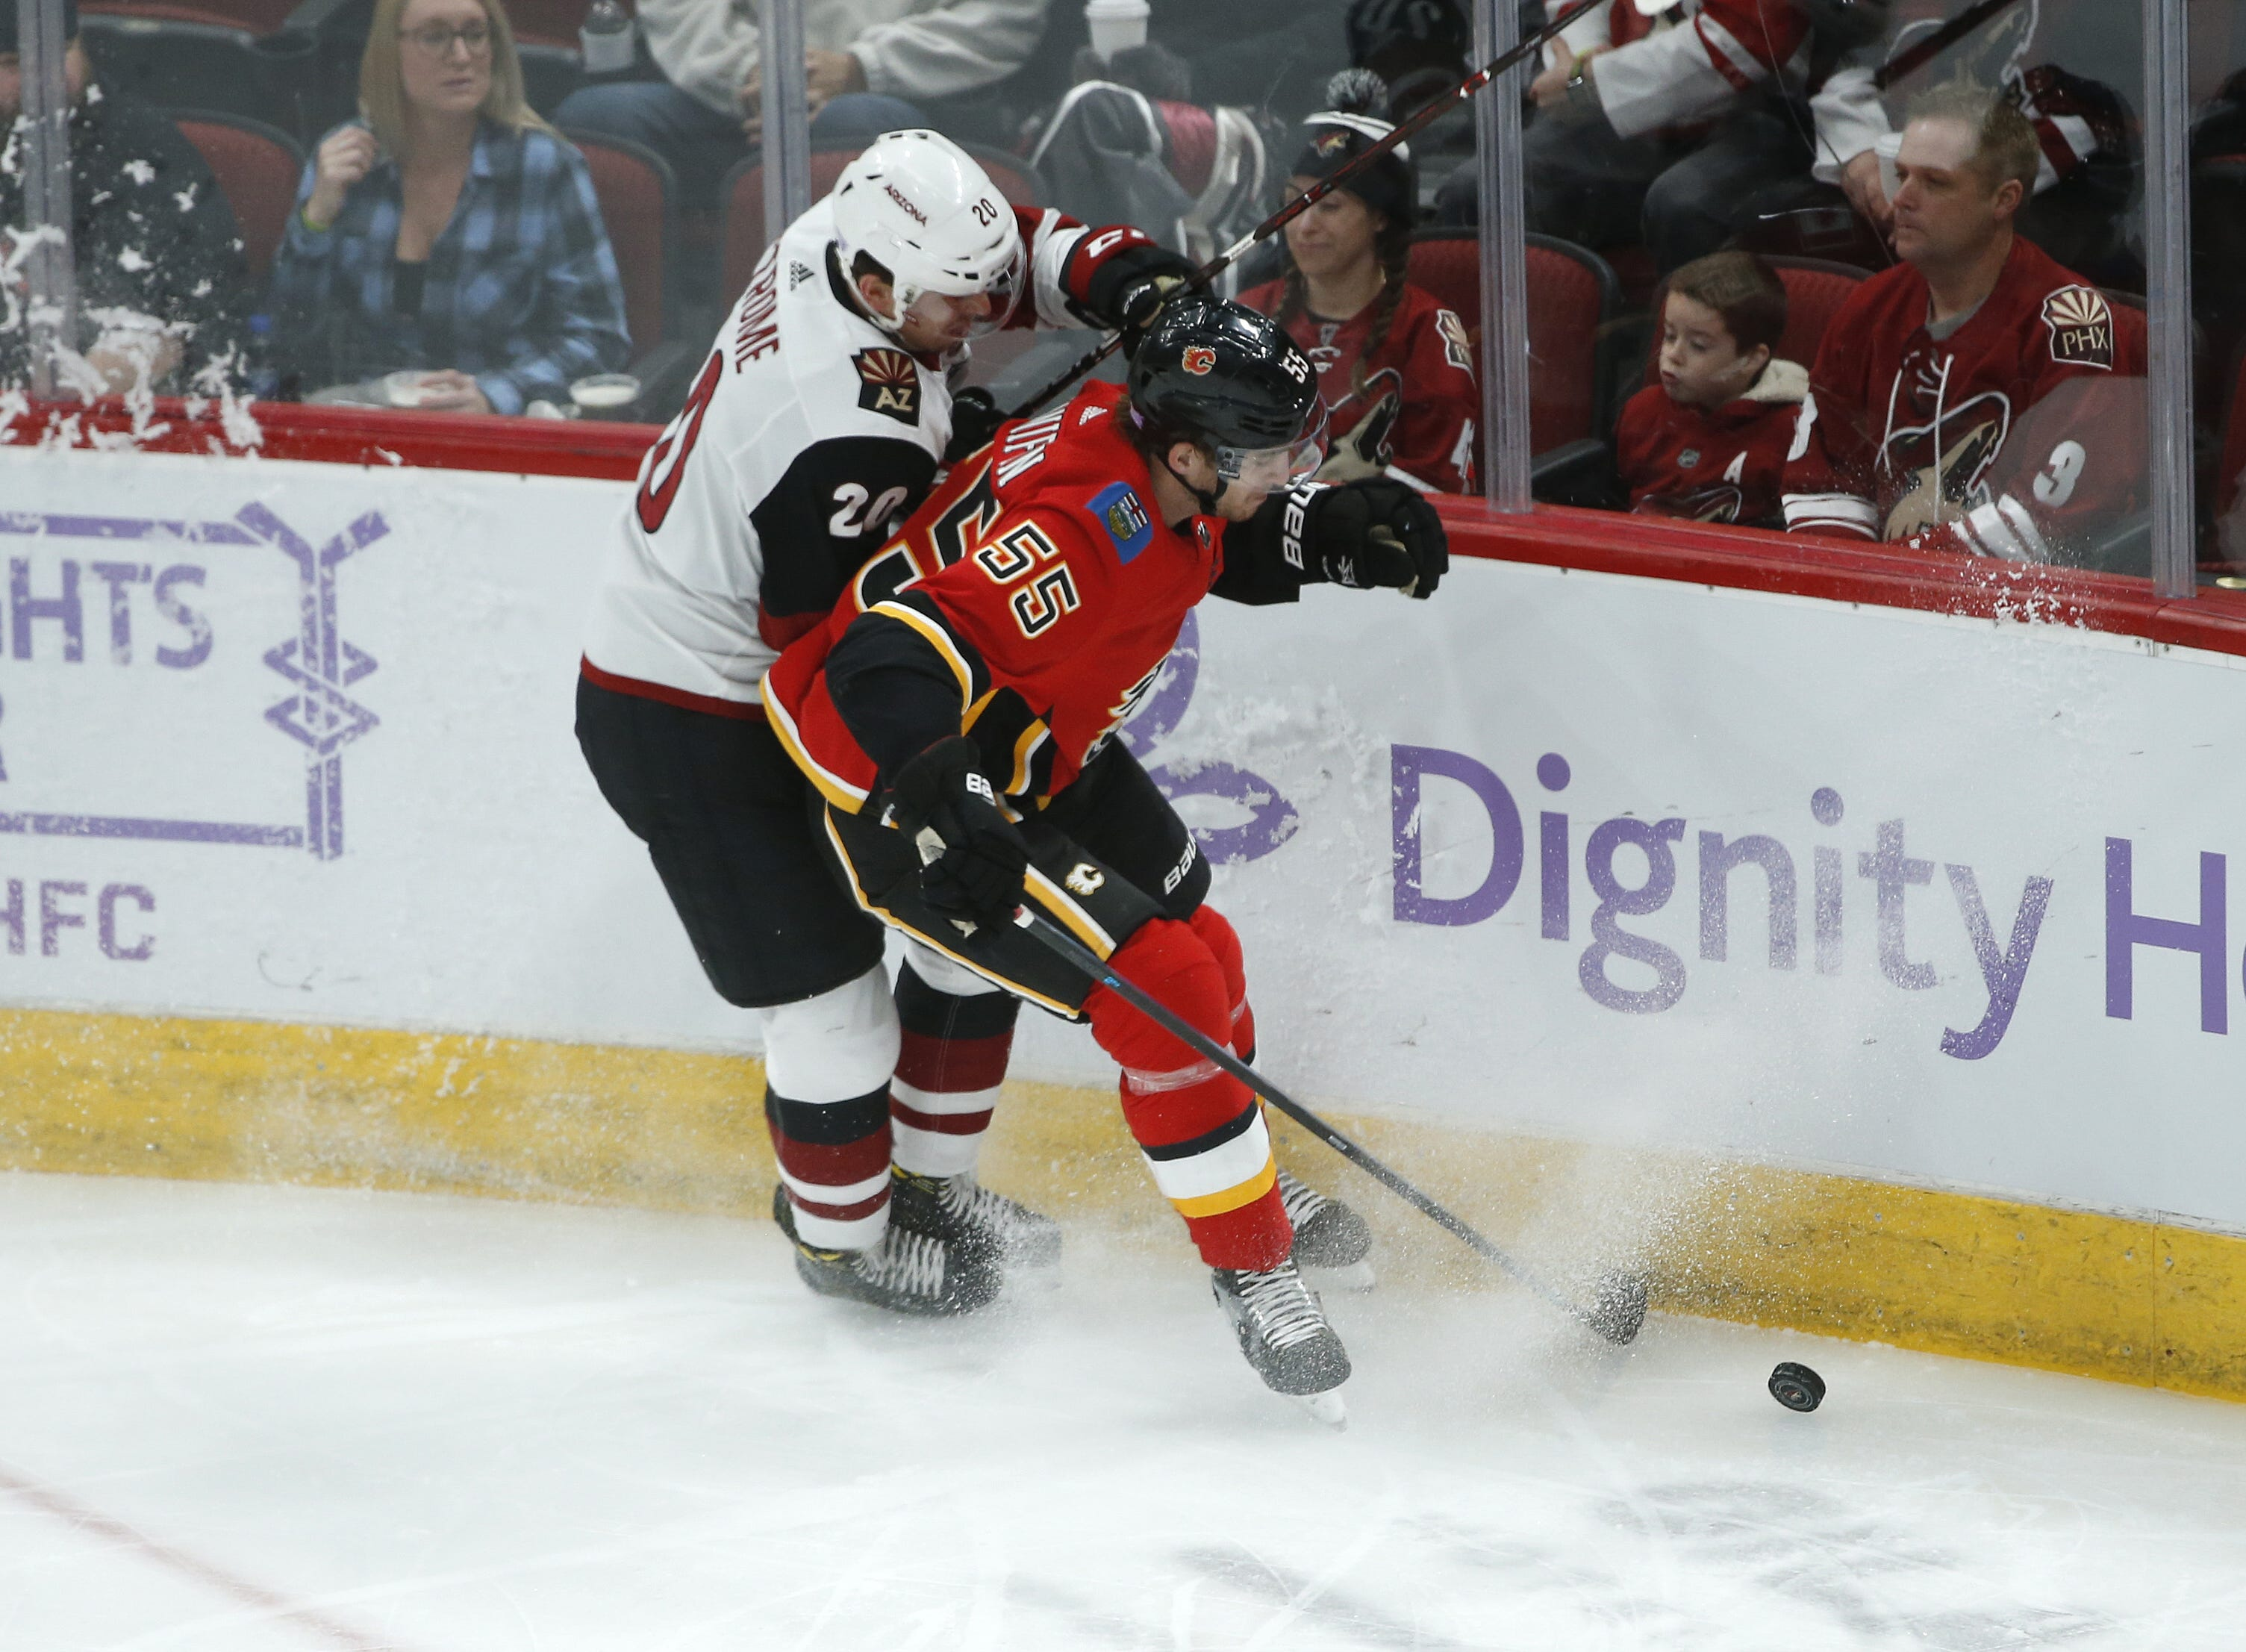 Coyotes' Dylan Strome (20) collides with Flames' Noah Hanifin (55) going for a puck during the first period at Gila River Arena in Glendale, Ariz. on November 25, 2018.